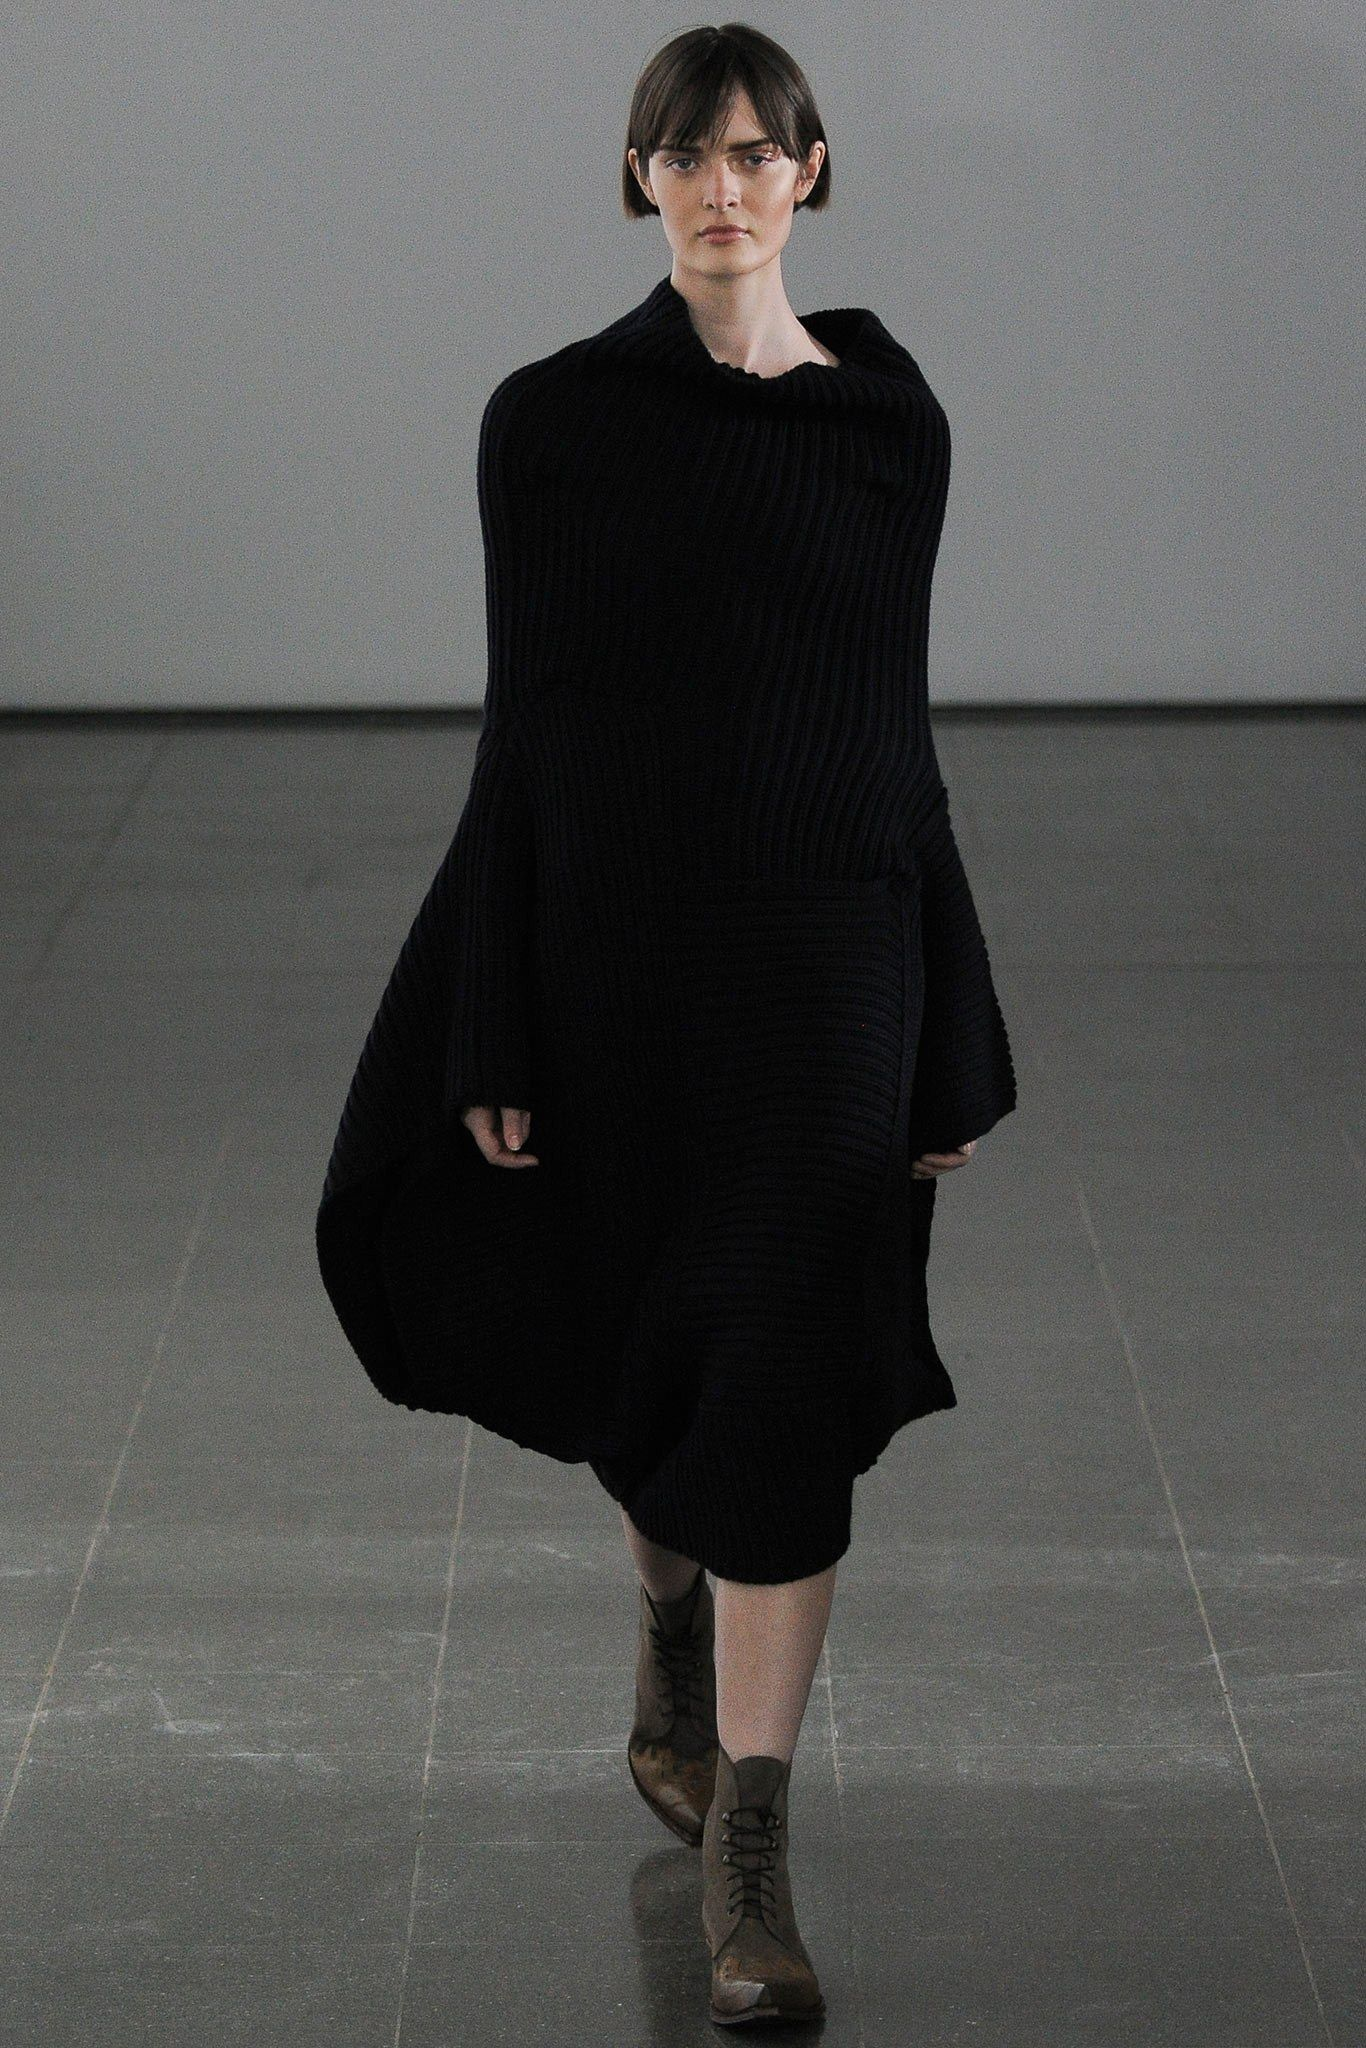 Joseph Fall 2014 Ready-to-Wear Fashion Show - Sam Rollinson